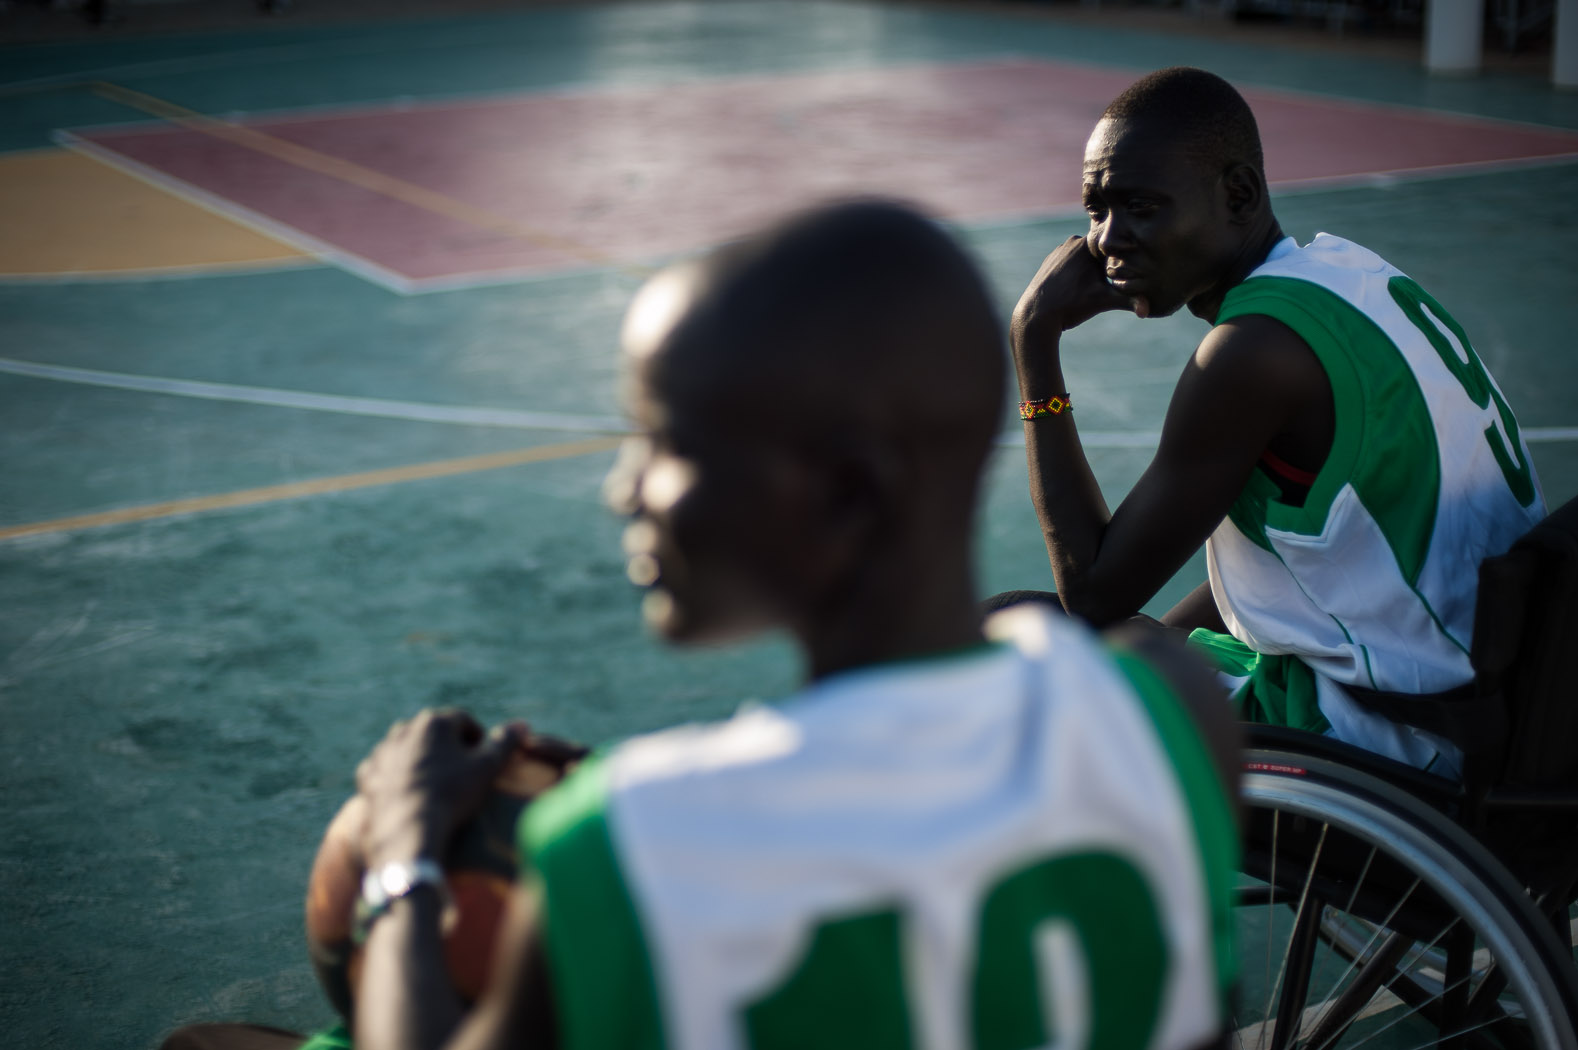 Basketball is unofficially the national sport of the country. Here, players who had lost limbs as a result of the war, get ready for a match coached by former NBA players, visiting South Sudan.